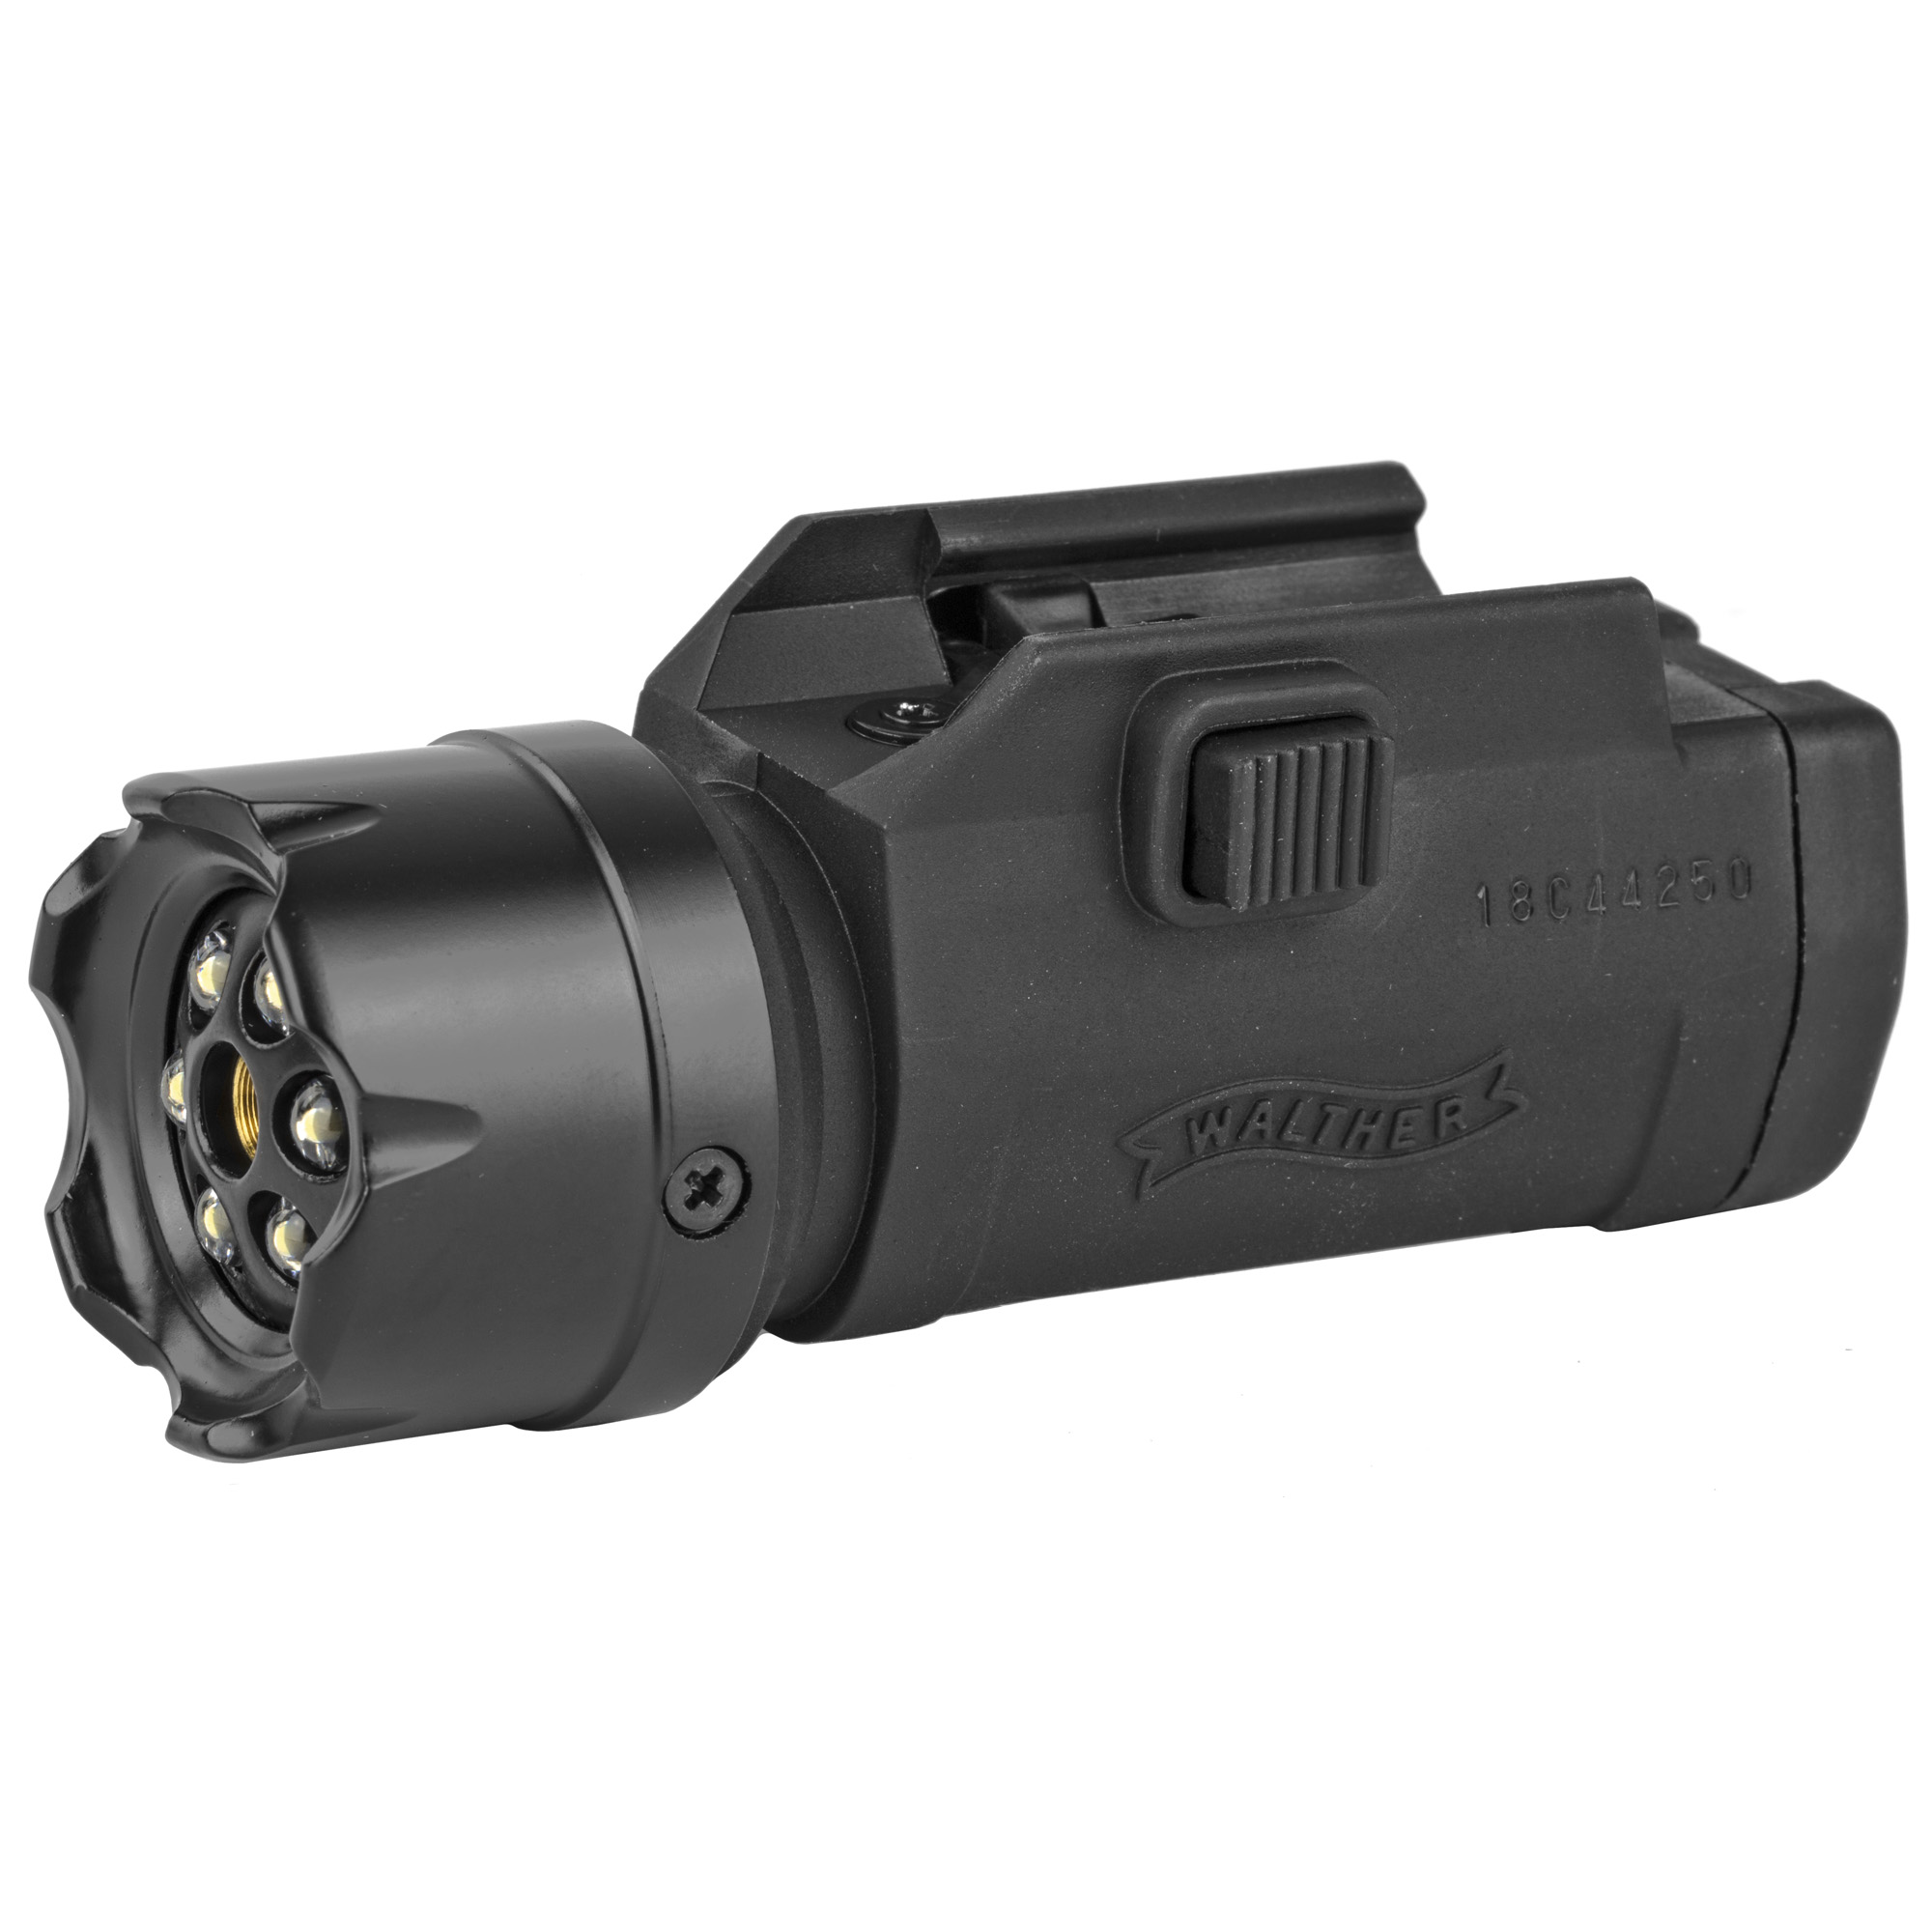 "The Walther FLR 650 LED Light and Laser Sight fits Weaver and Picatinny rails with a spring tension mounting system. This sight allows you to clearly see what you are aiming at. A tough composite frame and housing encloses the bright flashlight"" which contains six white LED lights and a red laser (Class IIIA"" 5 mW) in the center of the sight. The four-function switch allows fast switching between flashlight"" laser"" laser and flashlight"" or off. The Nightforce's sight is fully adjustable for windage and elevation. Three AAA batteries are included. Make your air rifle"" air pistol"" or airsoft gun more tactical today!"